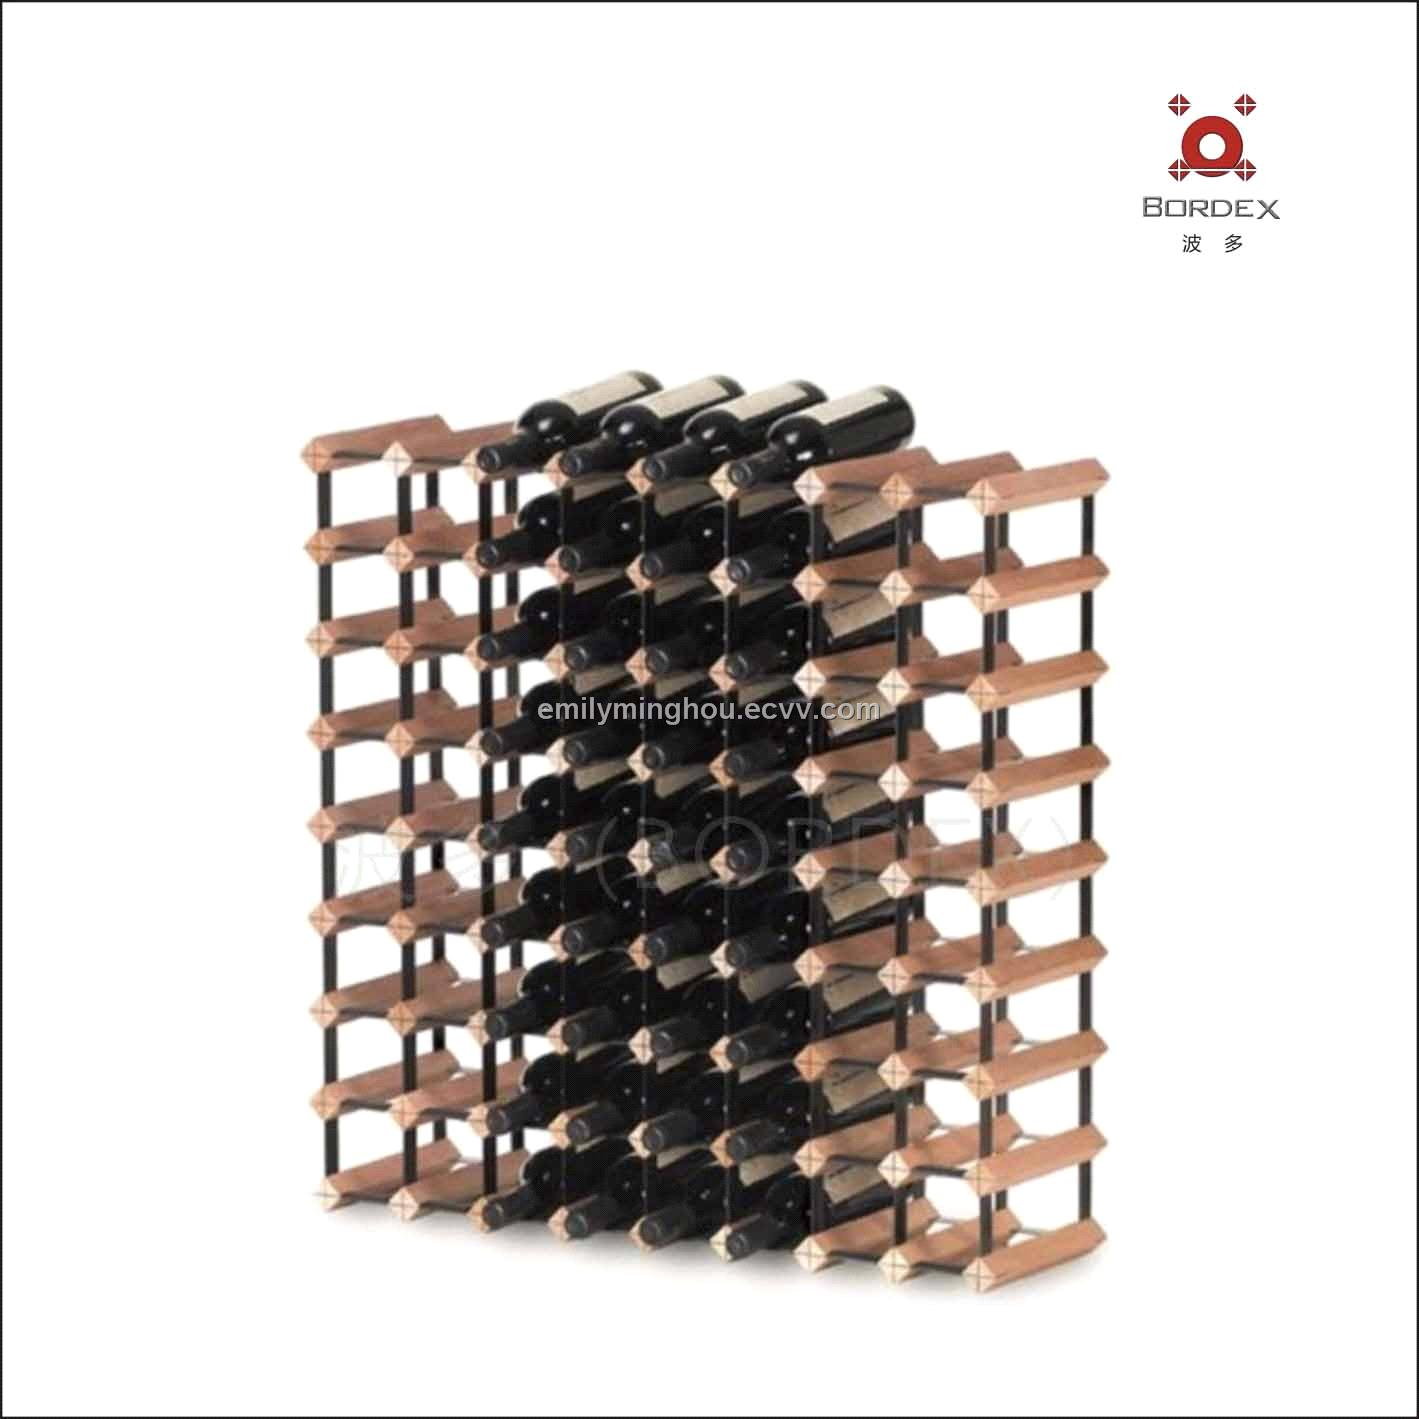 72 Bottles Storage Wine Bottle Holder Wine Bottle Rack